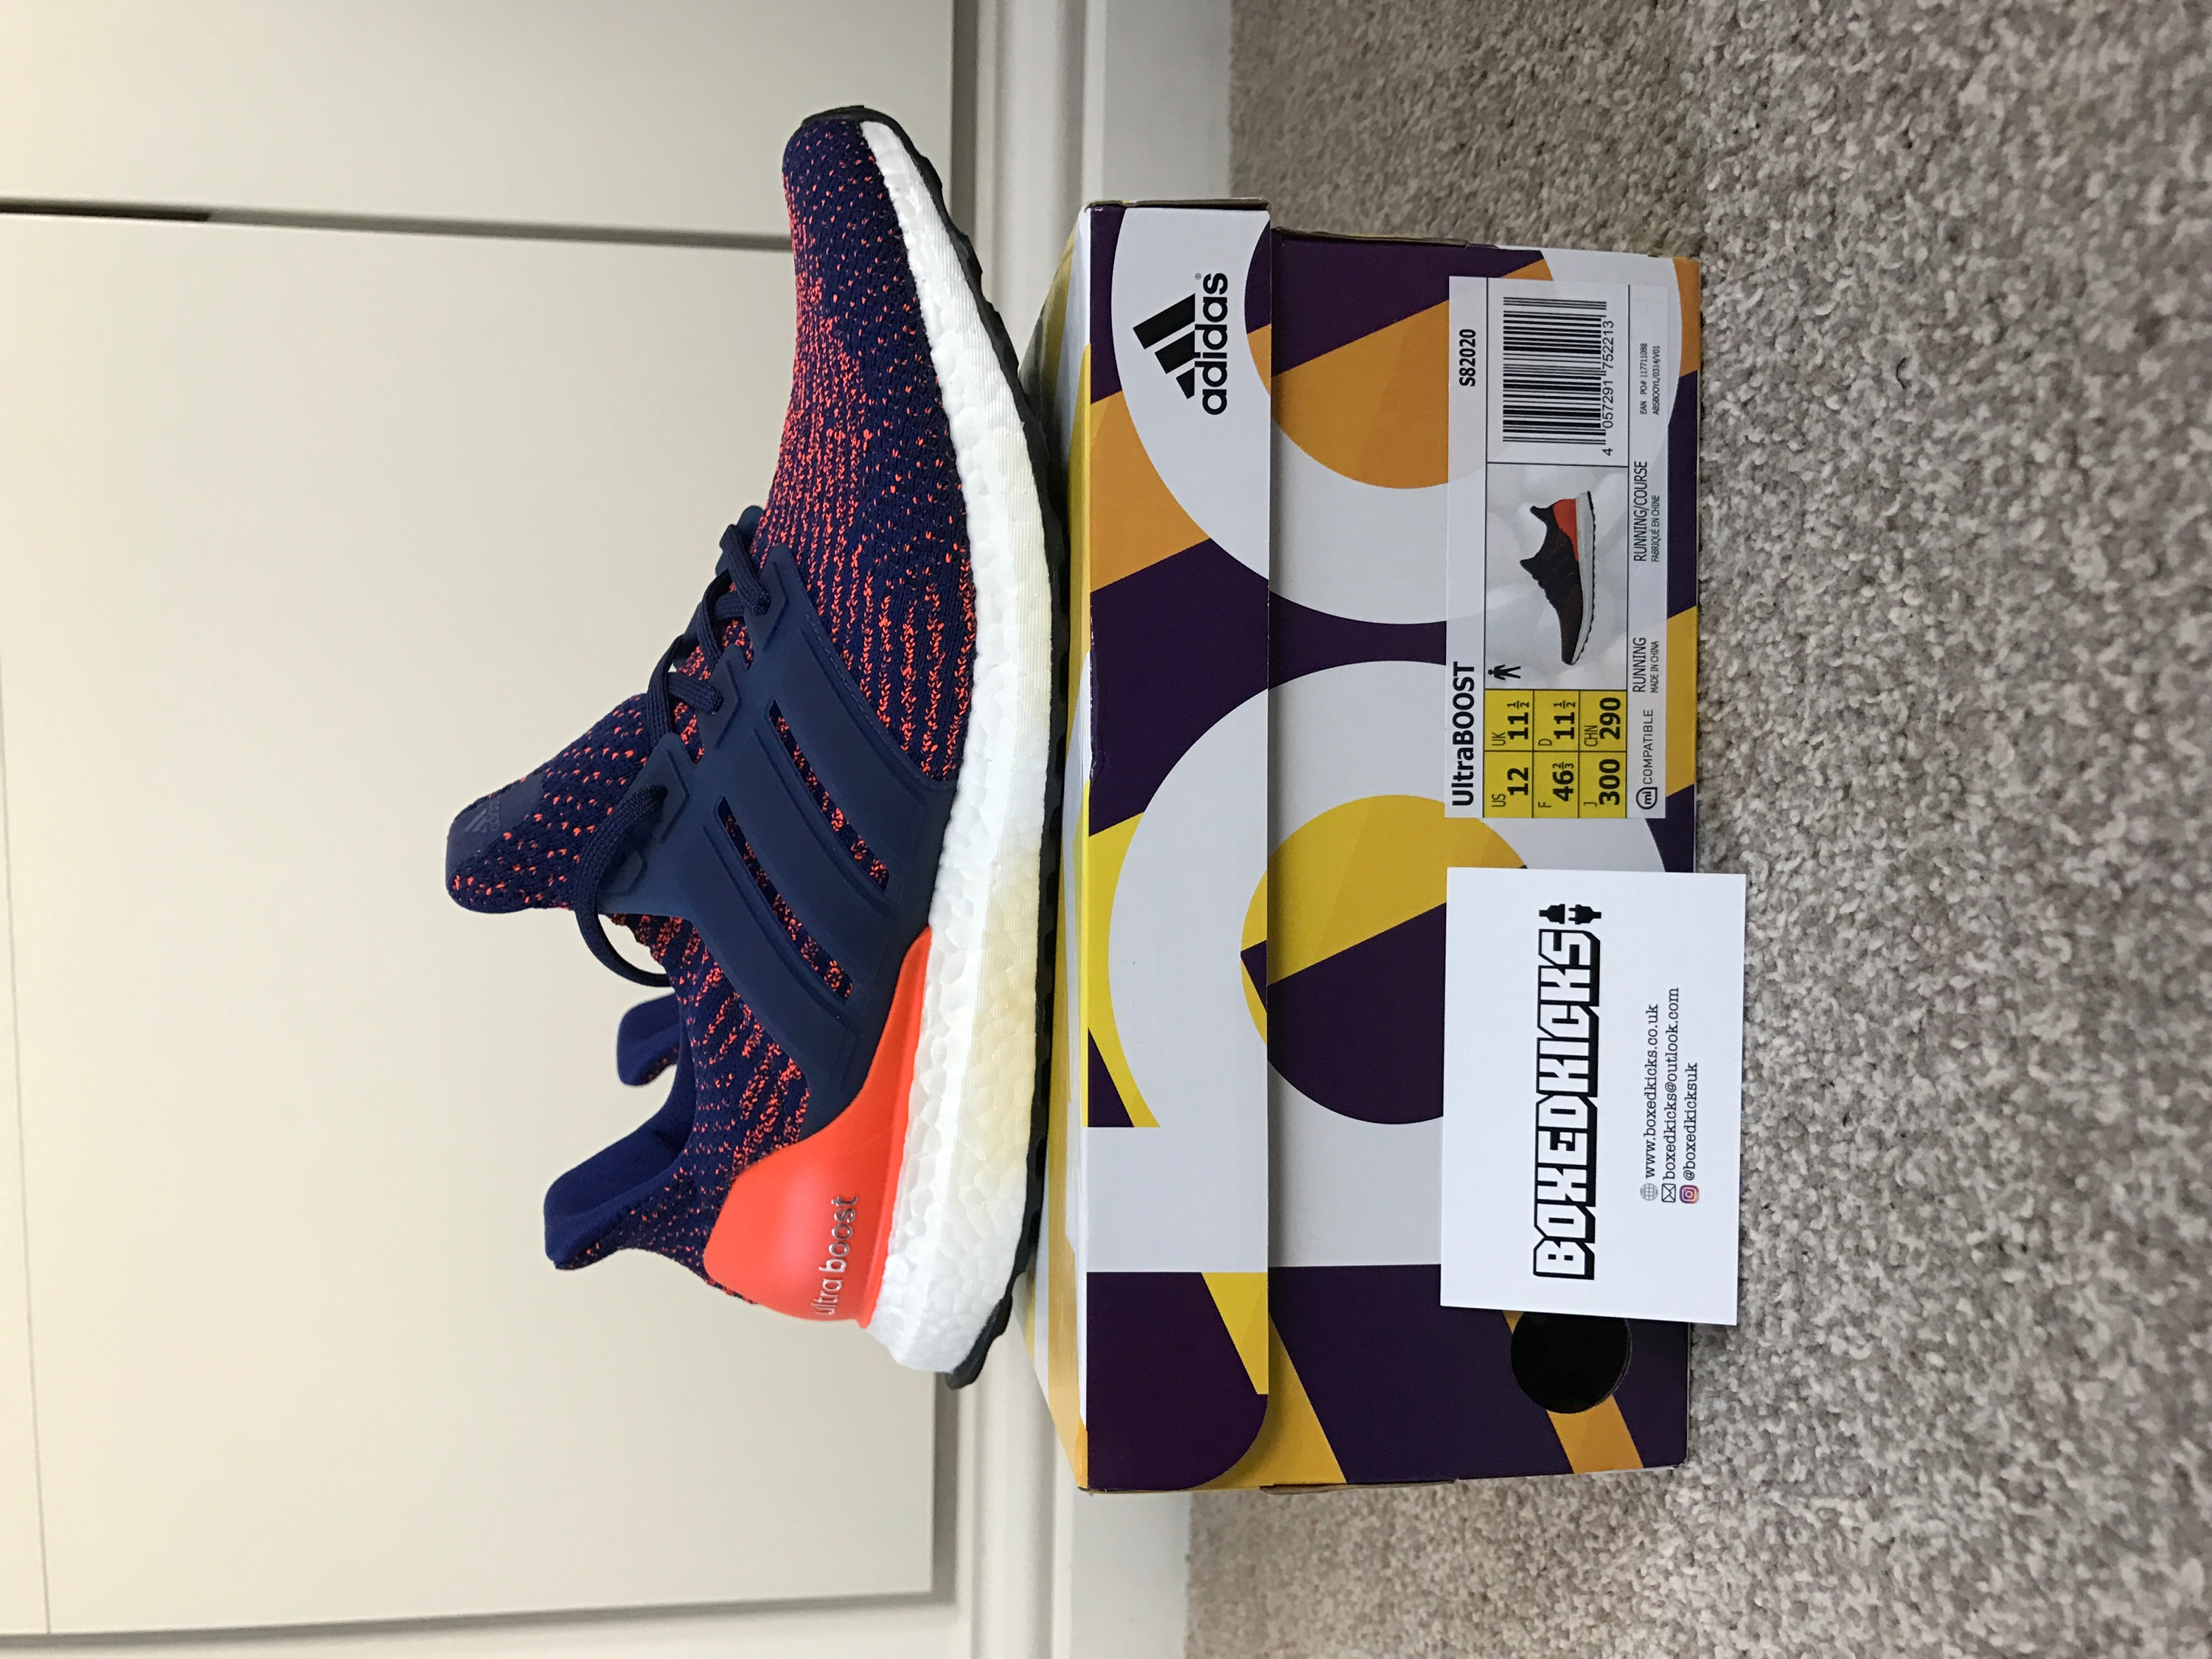 cf84a6f6dca08 Adidas Adidas Ultra Boost 3.0 Mystic Ink Mystery Solar Orange Blue Purple  UK 11.5 US 12 Size 12 - Low-Top Sneakers for Sale - Grailed